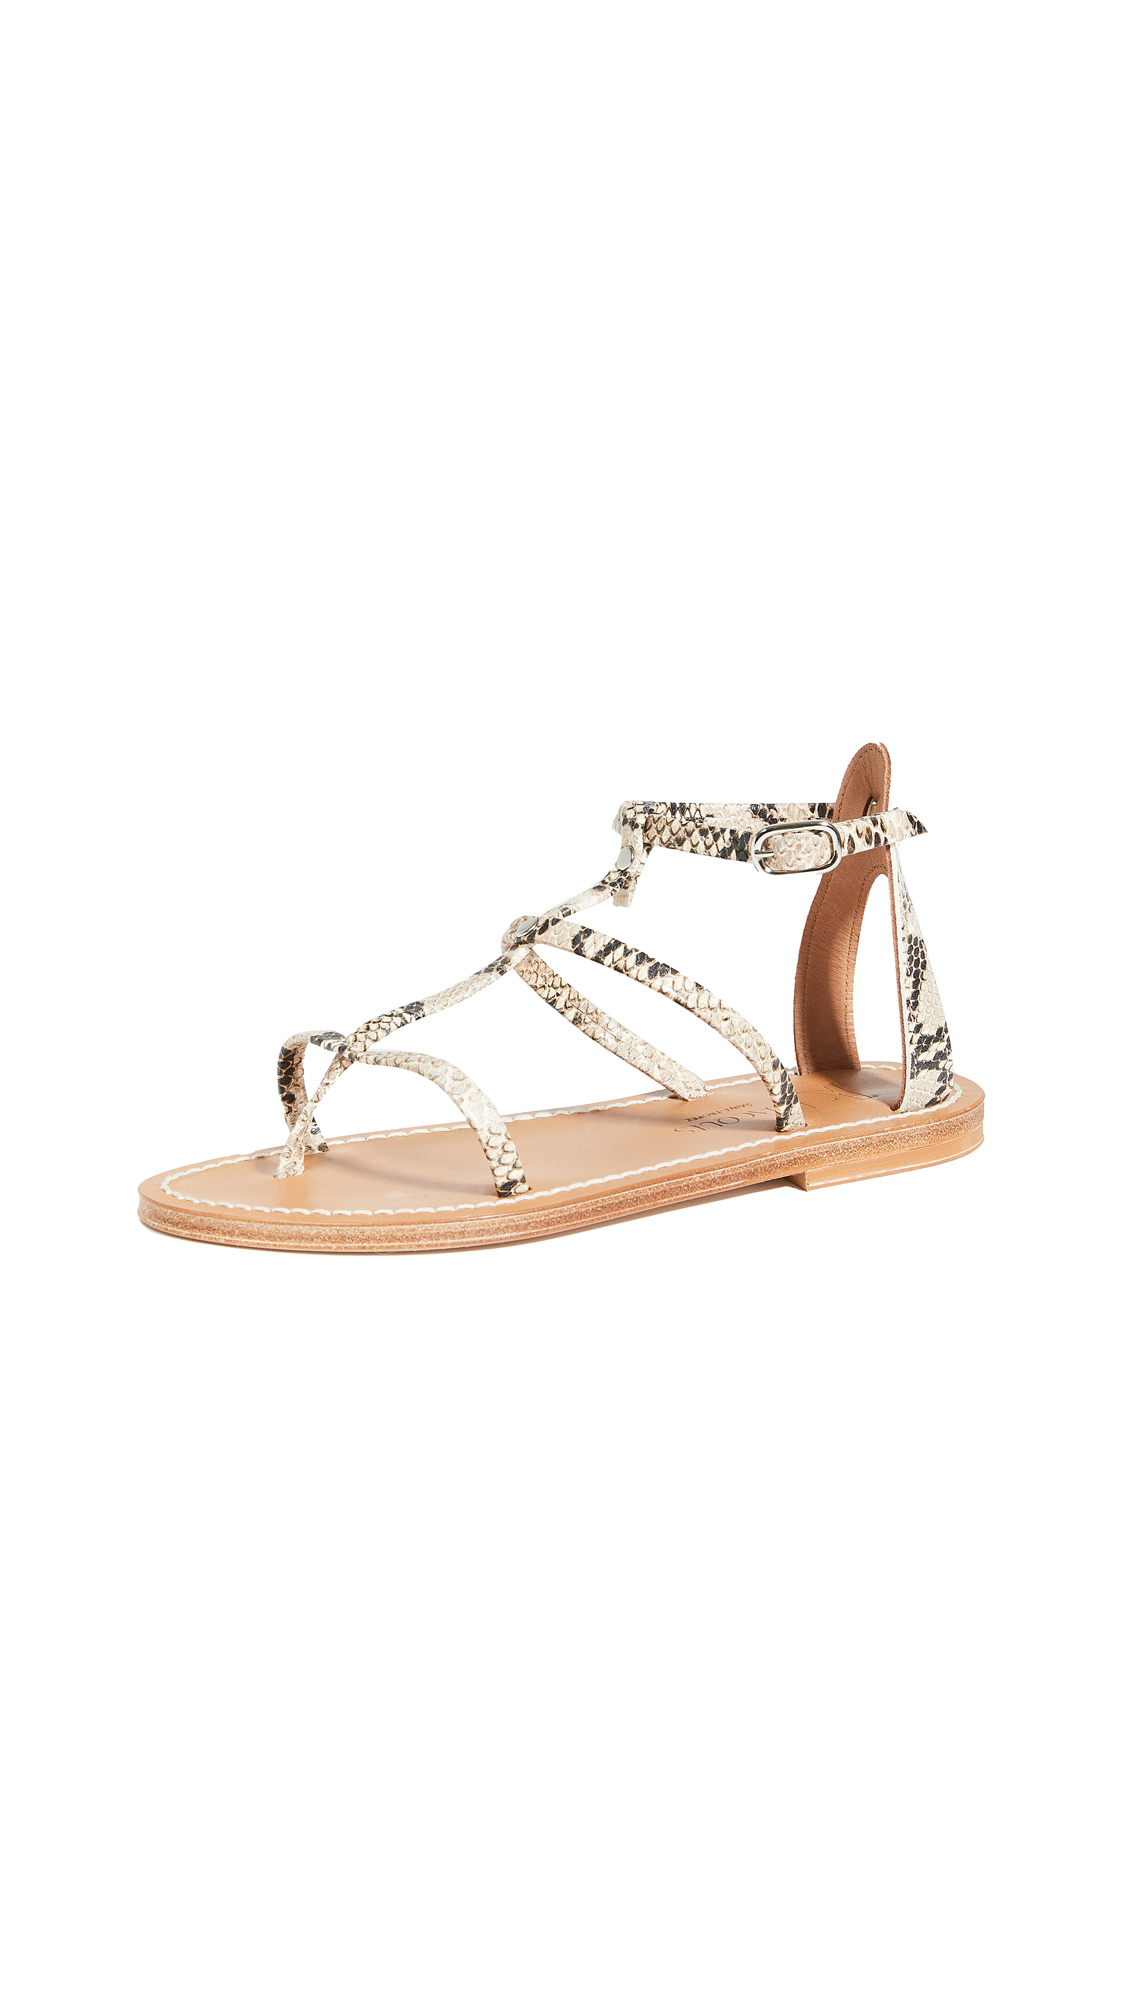 K.jacques ANTIOCHE SANDALS